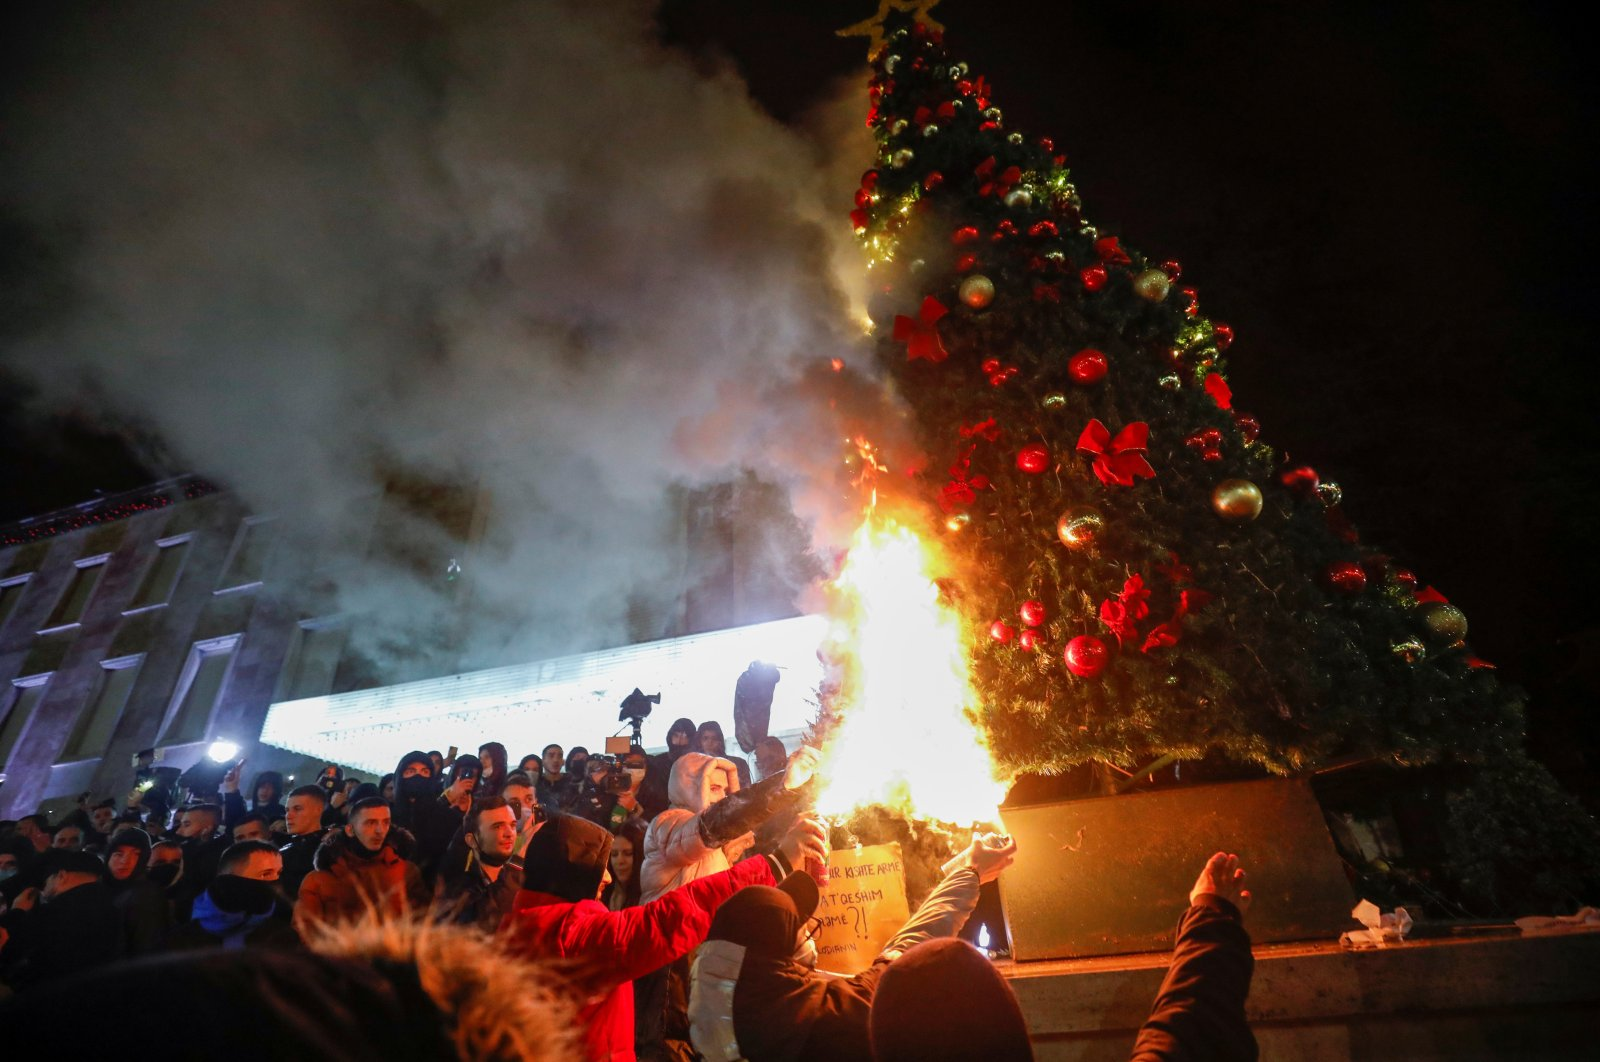 Demonstrators set fire to a Christmas tree in front of the prime minister's office during a protest in reaction to the death of Klodian Rasha, after he was shot dead during the country's overnight curfew, in Tirana, Albania, Dec. 9, 2020. (Reuters Photo)